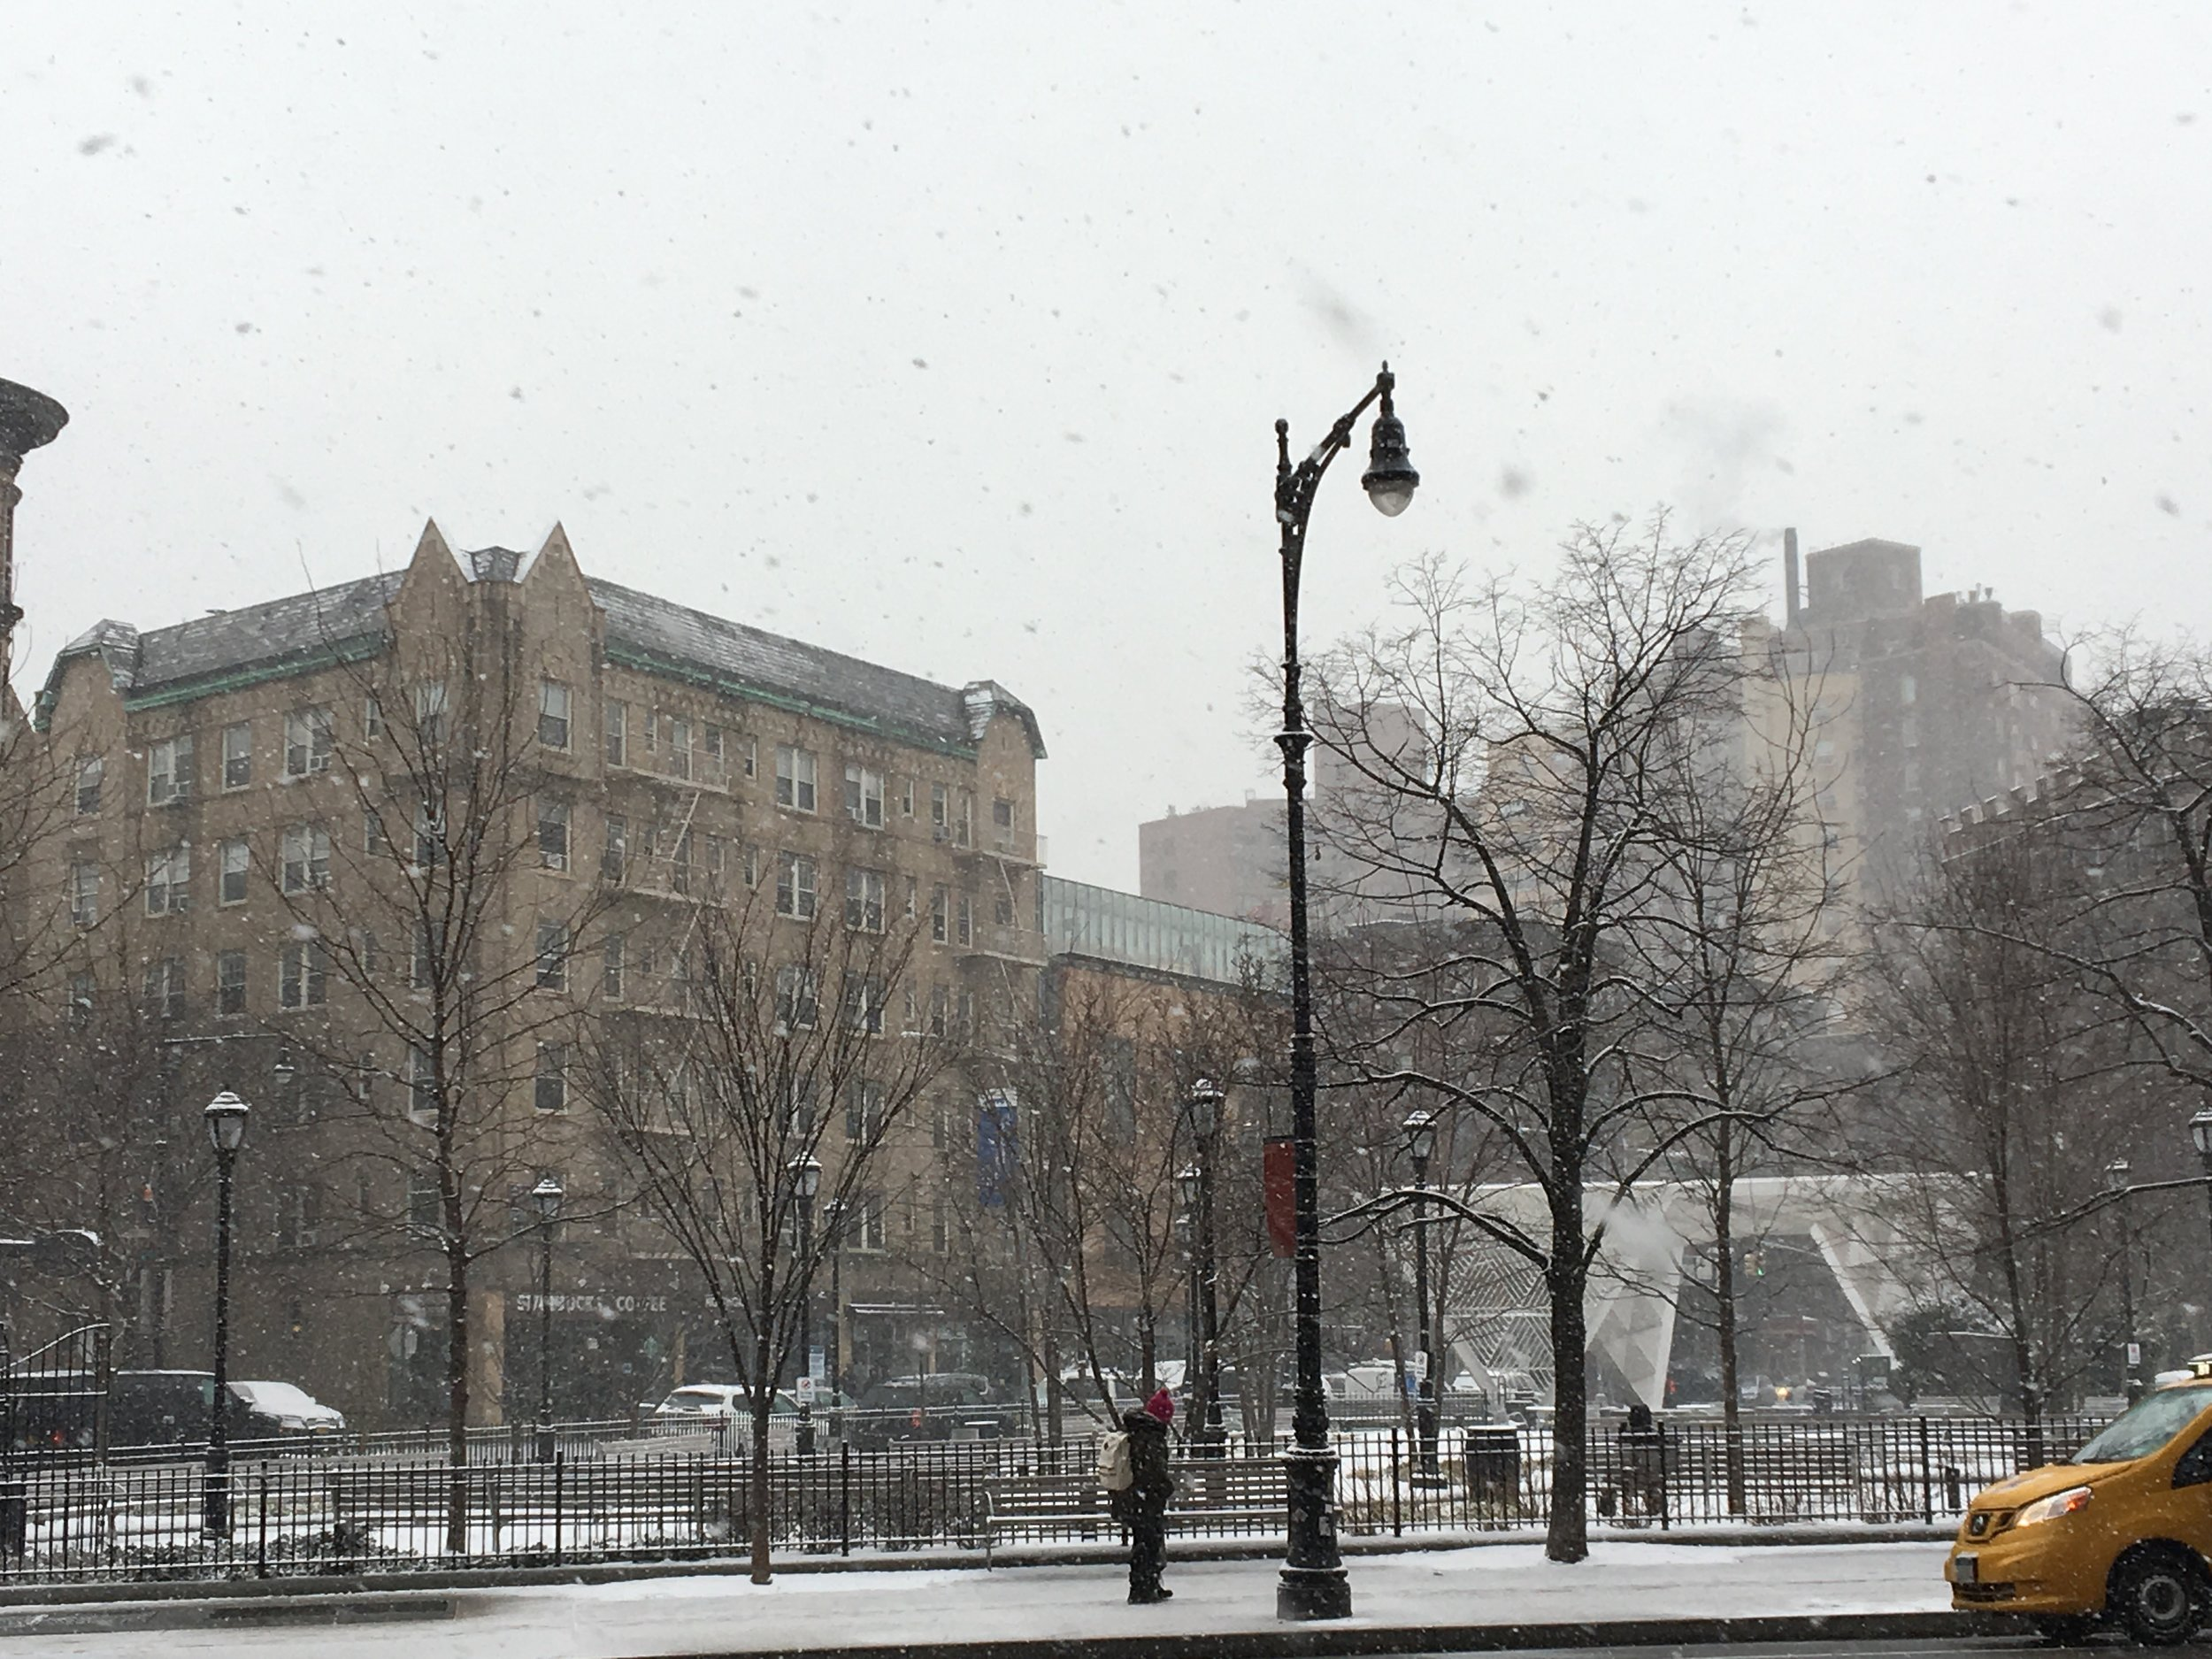 Surprise snow day in Soho